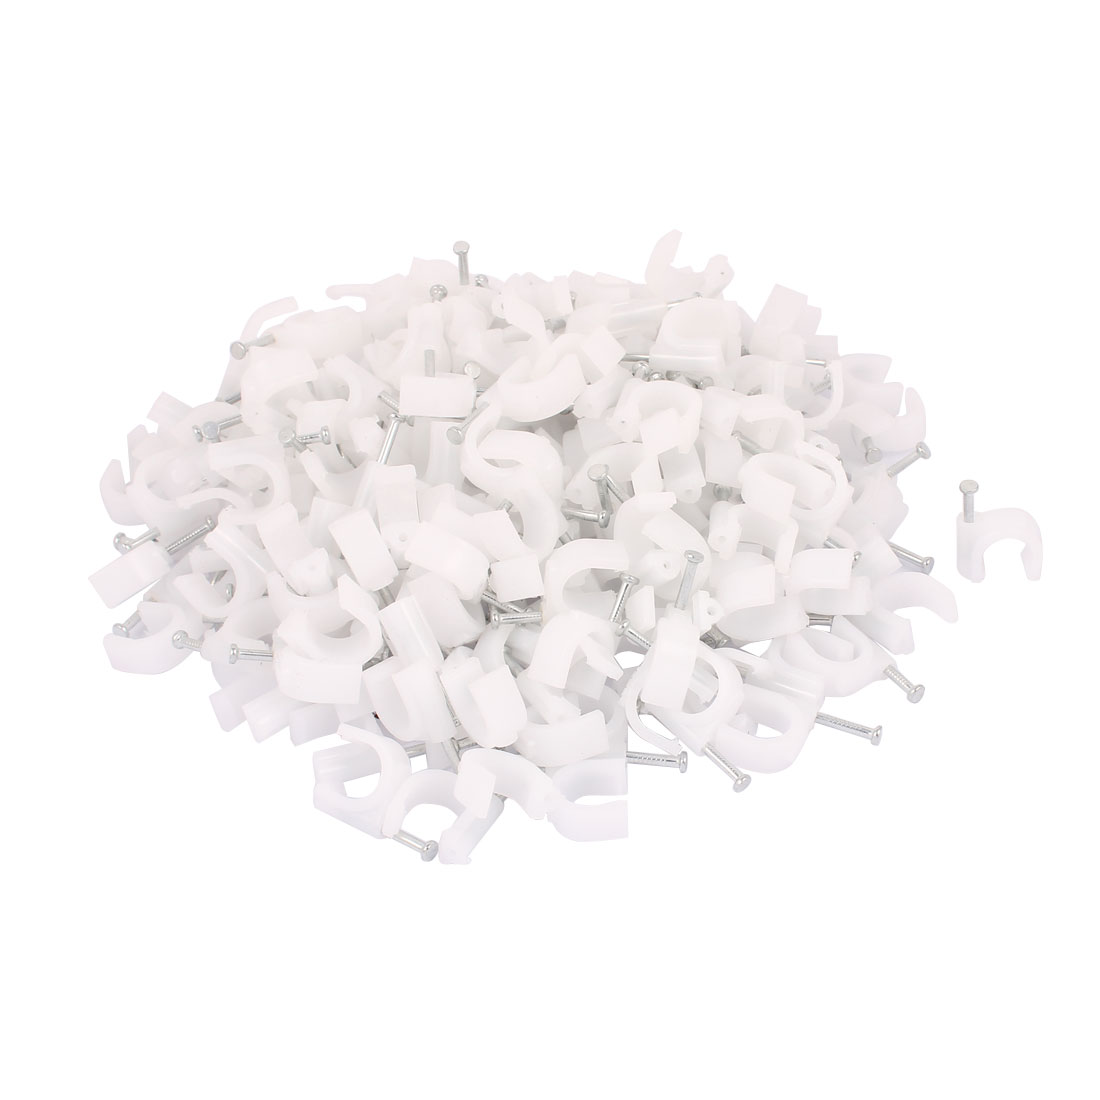 250 Pcs Wall Insert Inner Width 14mm Diameter Circle Cable Nail Clips White